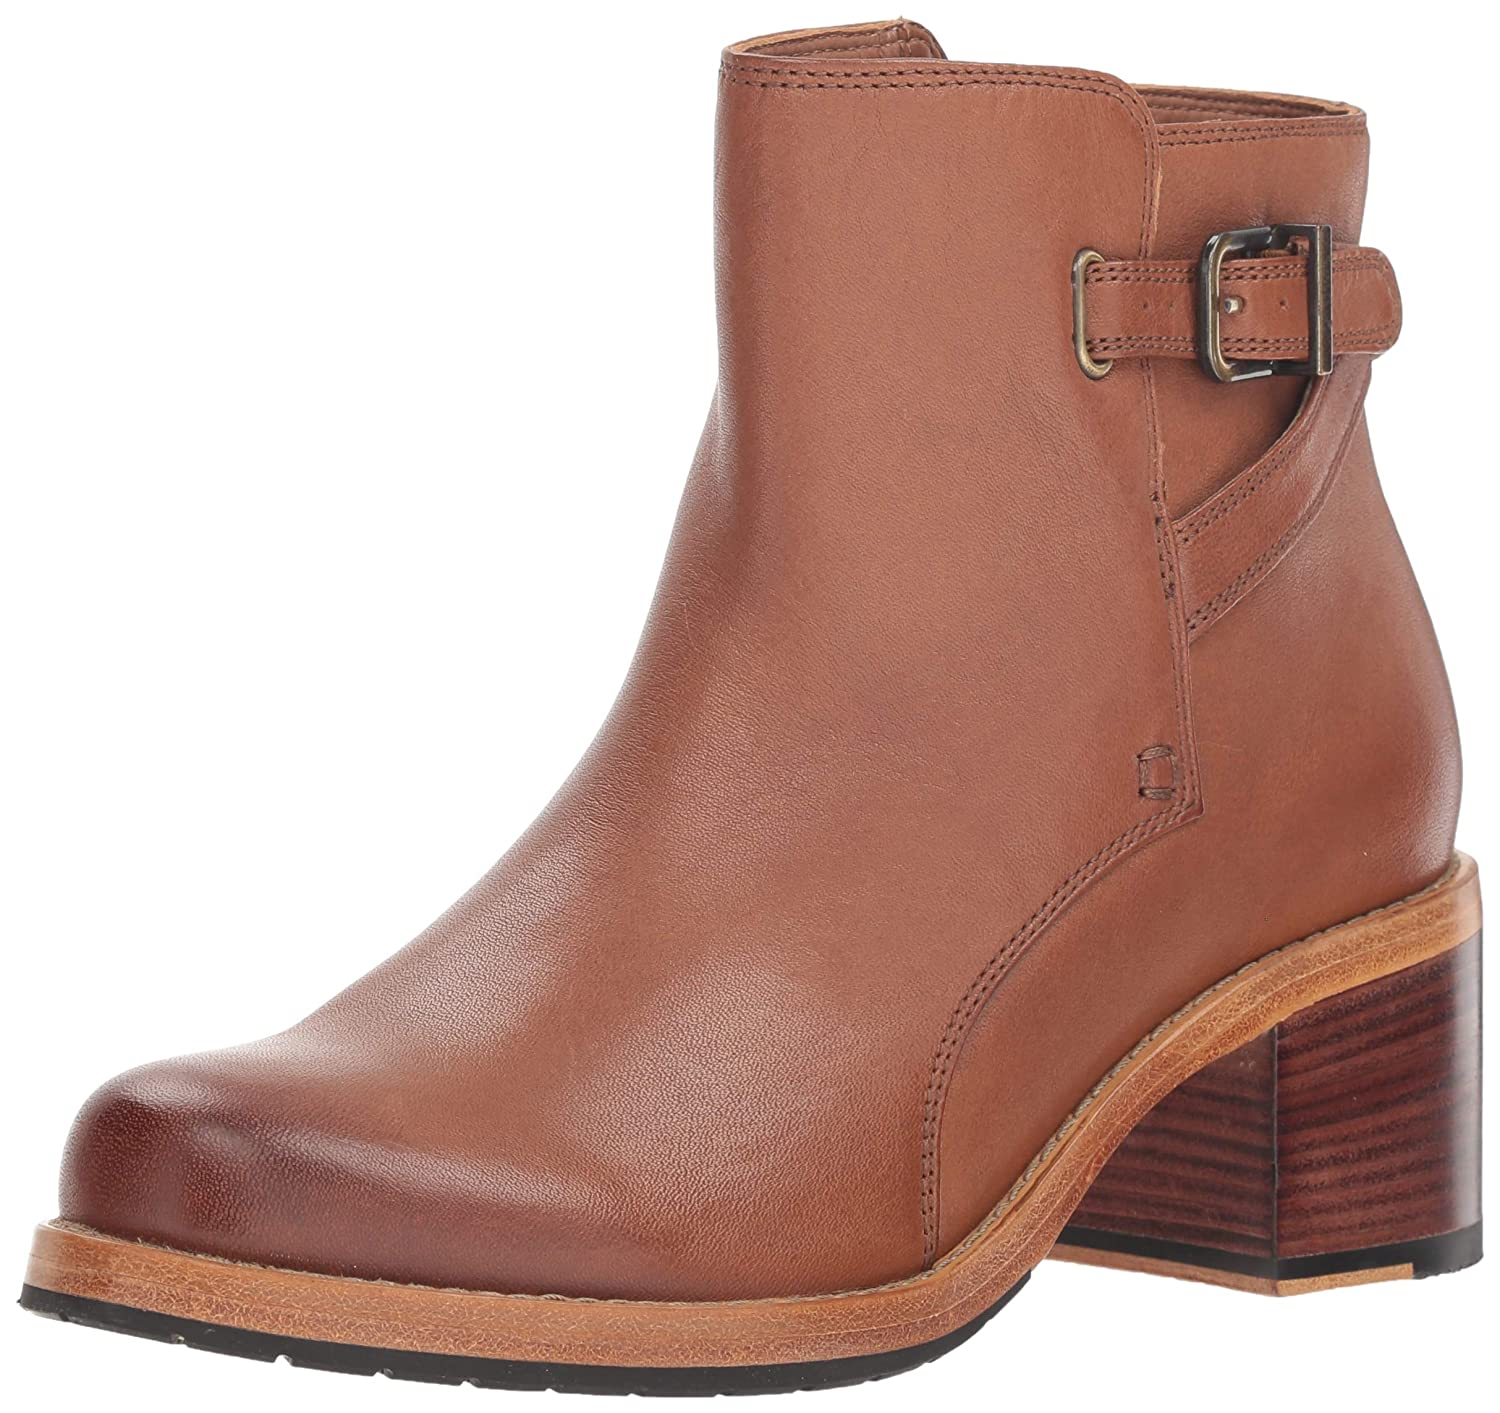 CLARKS femmes Clarkdale Jax Ankle démarrage, Dark Tan Leather, Taille 9